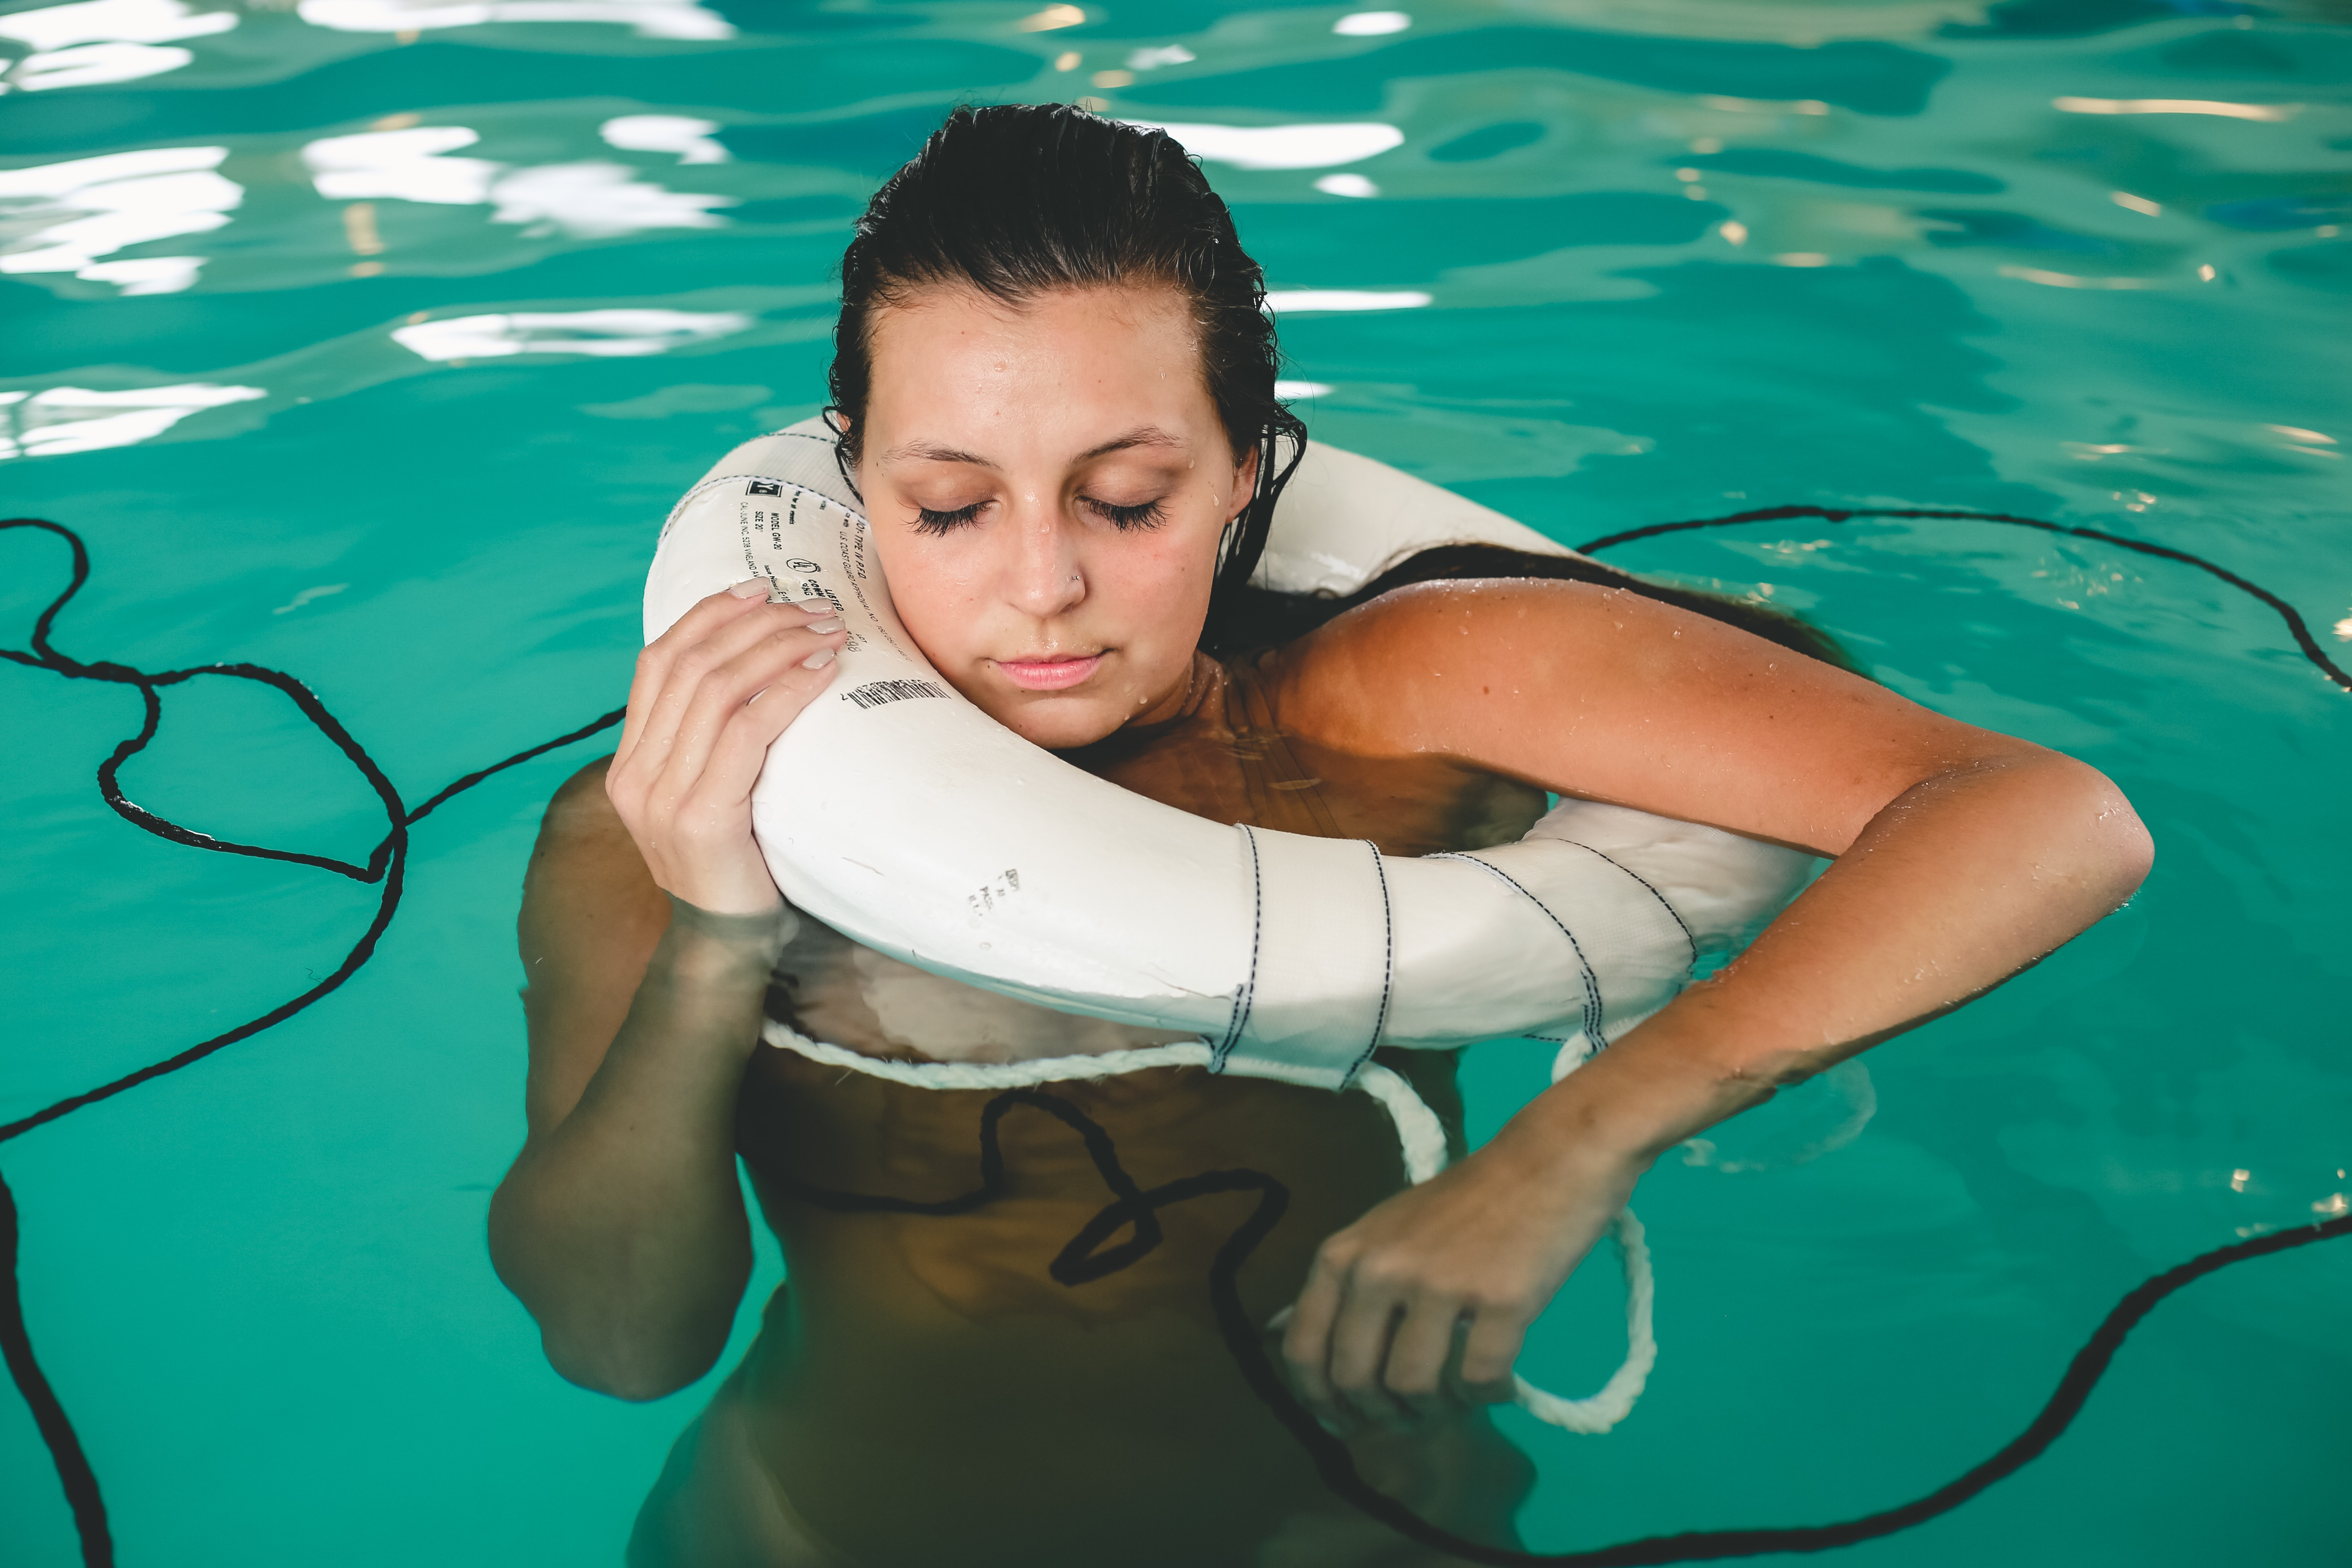 woman floating on swimming pool while holding a white buoy